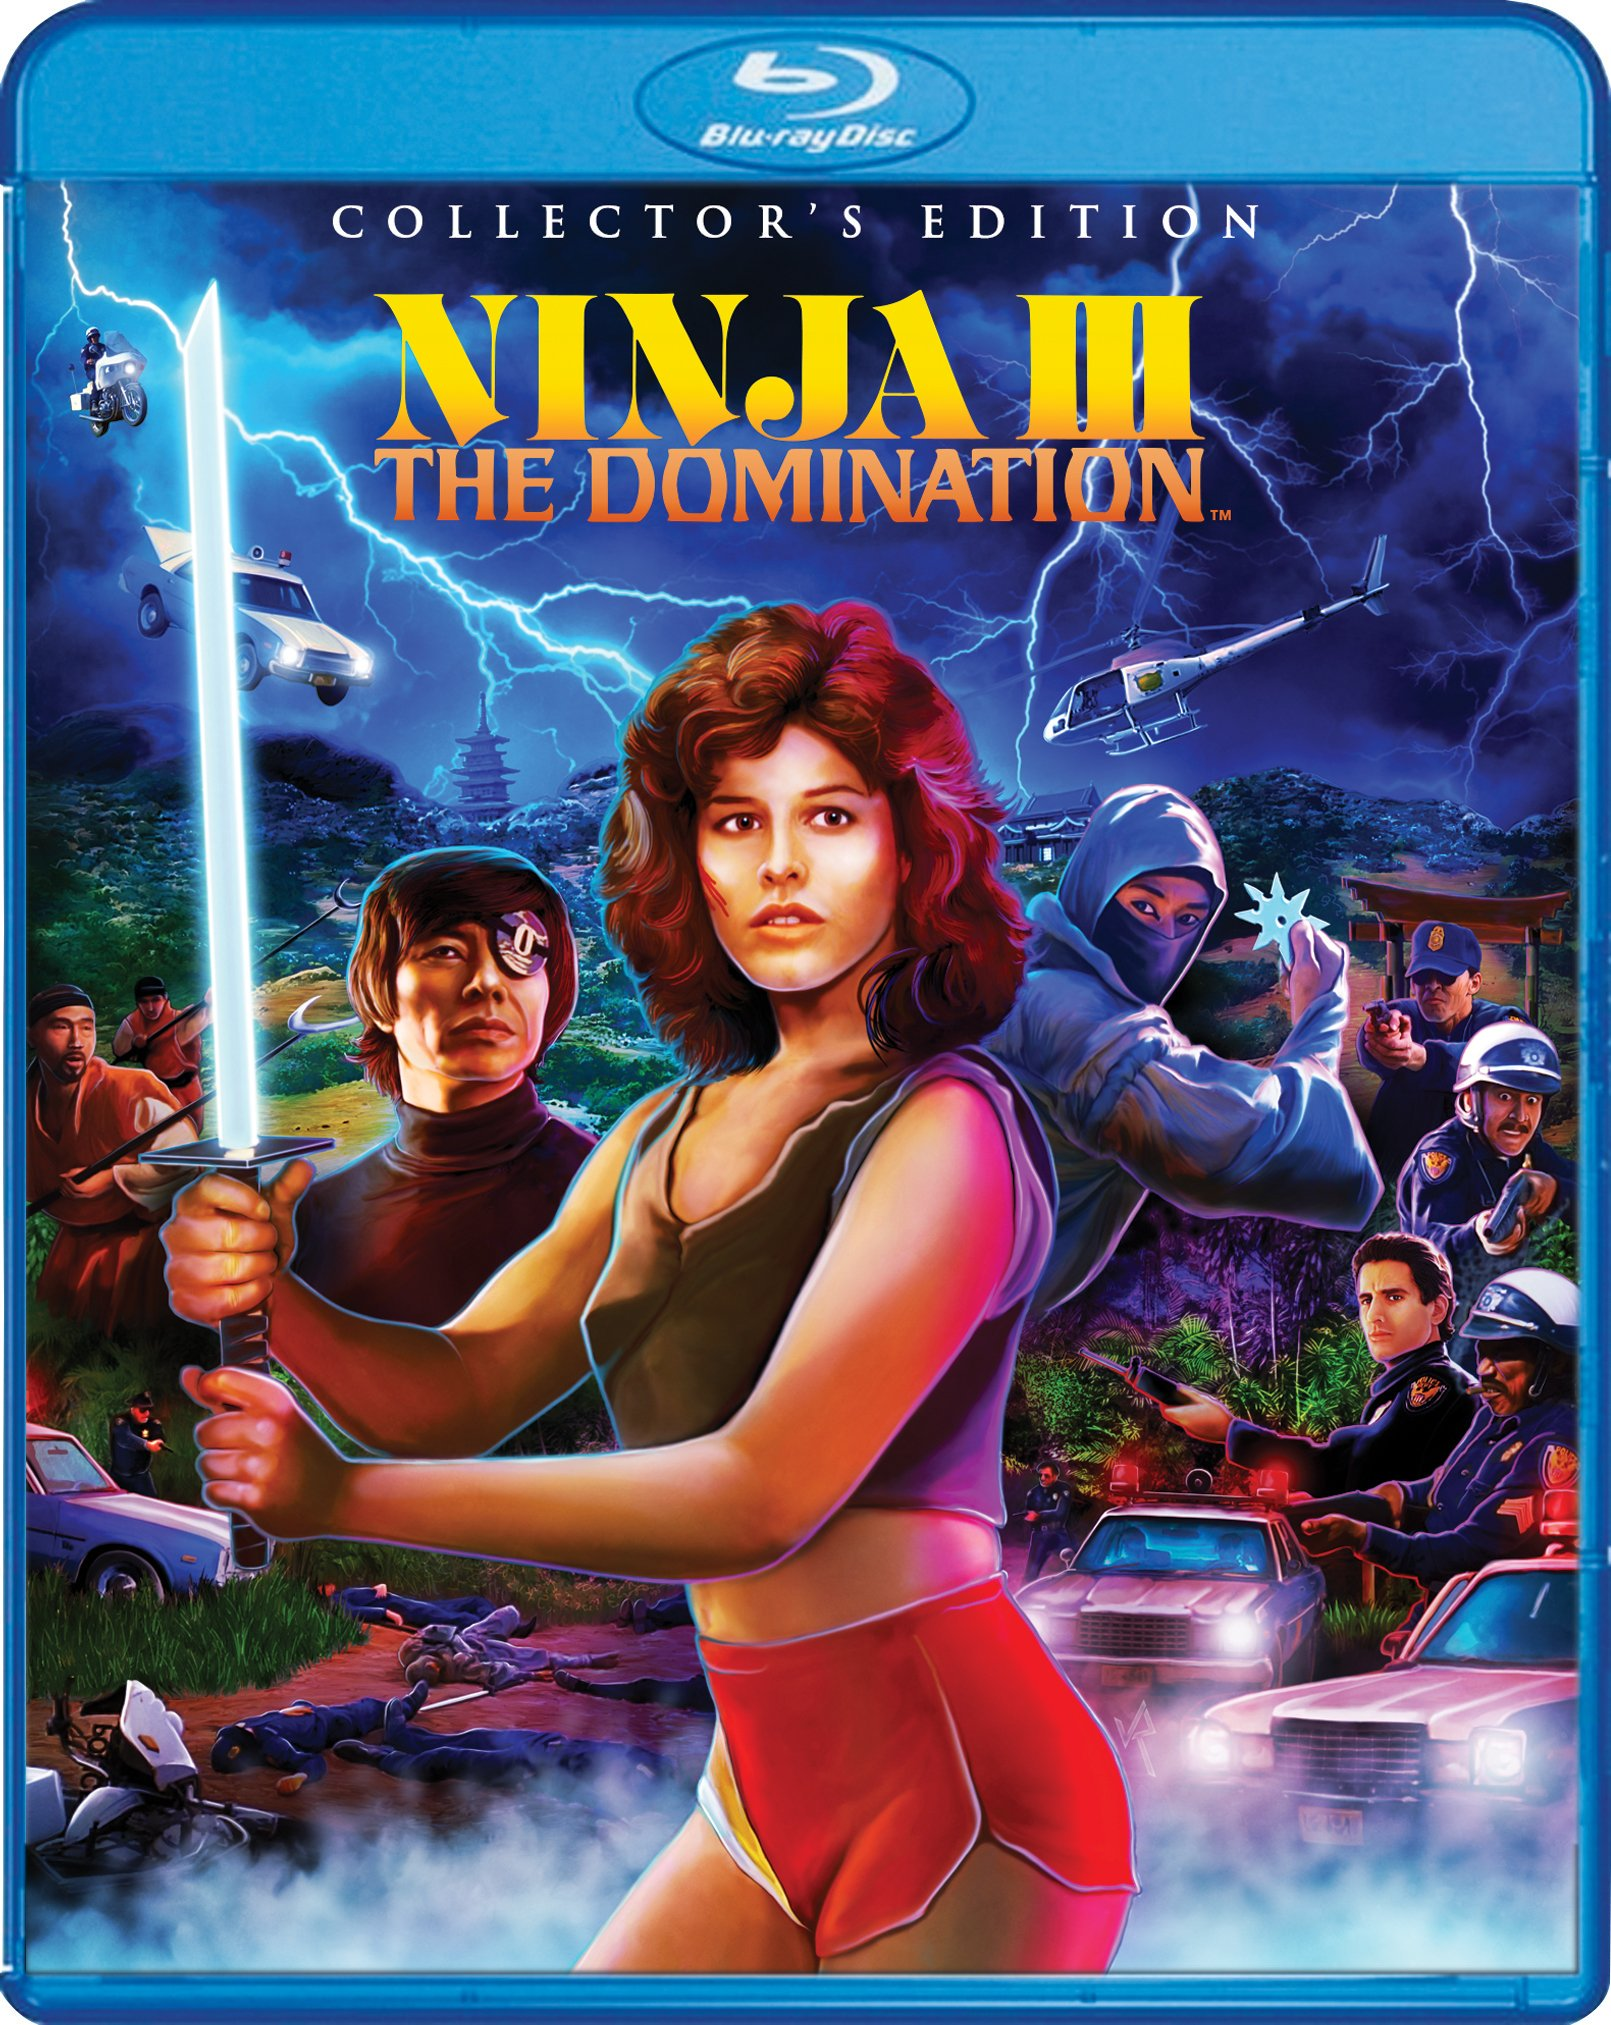 ninja iii the domination blu-ray